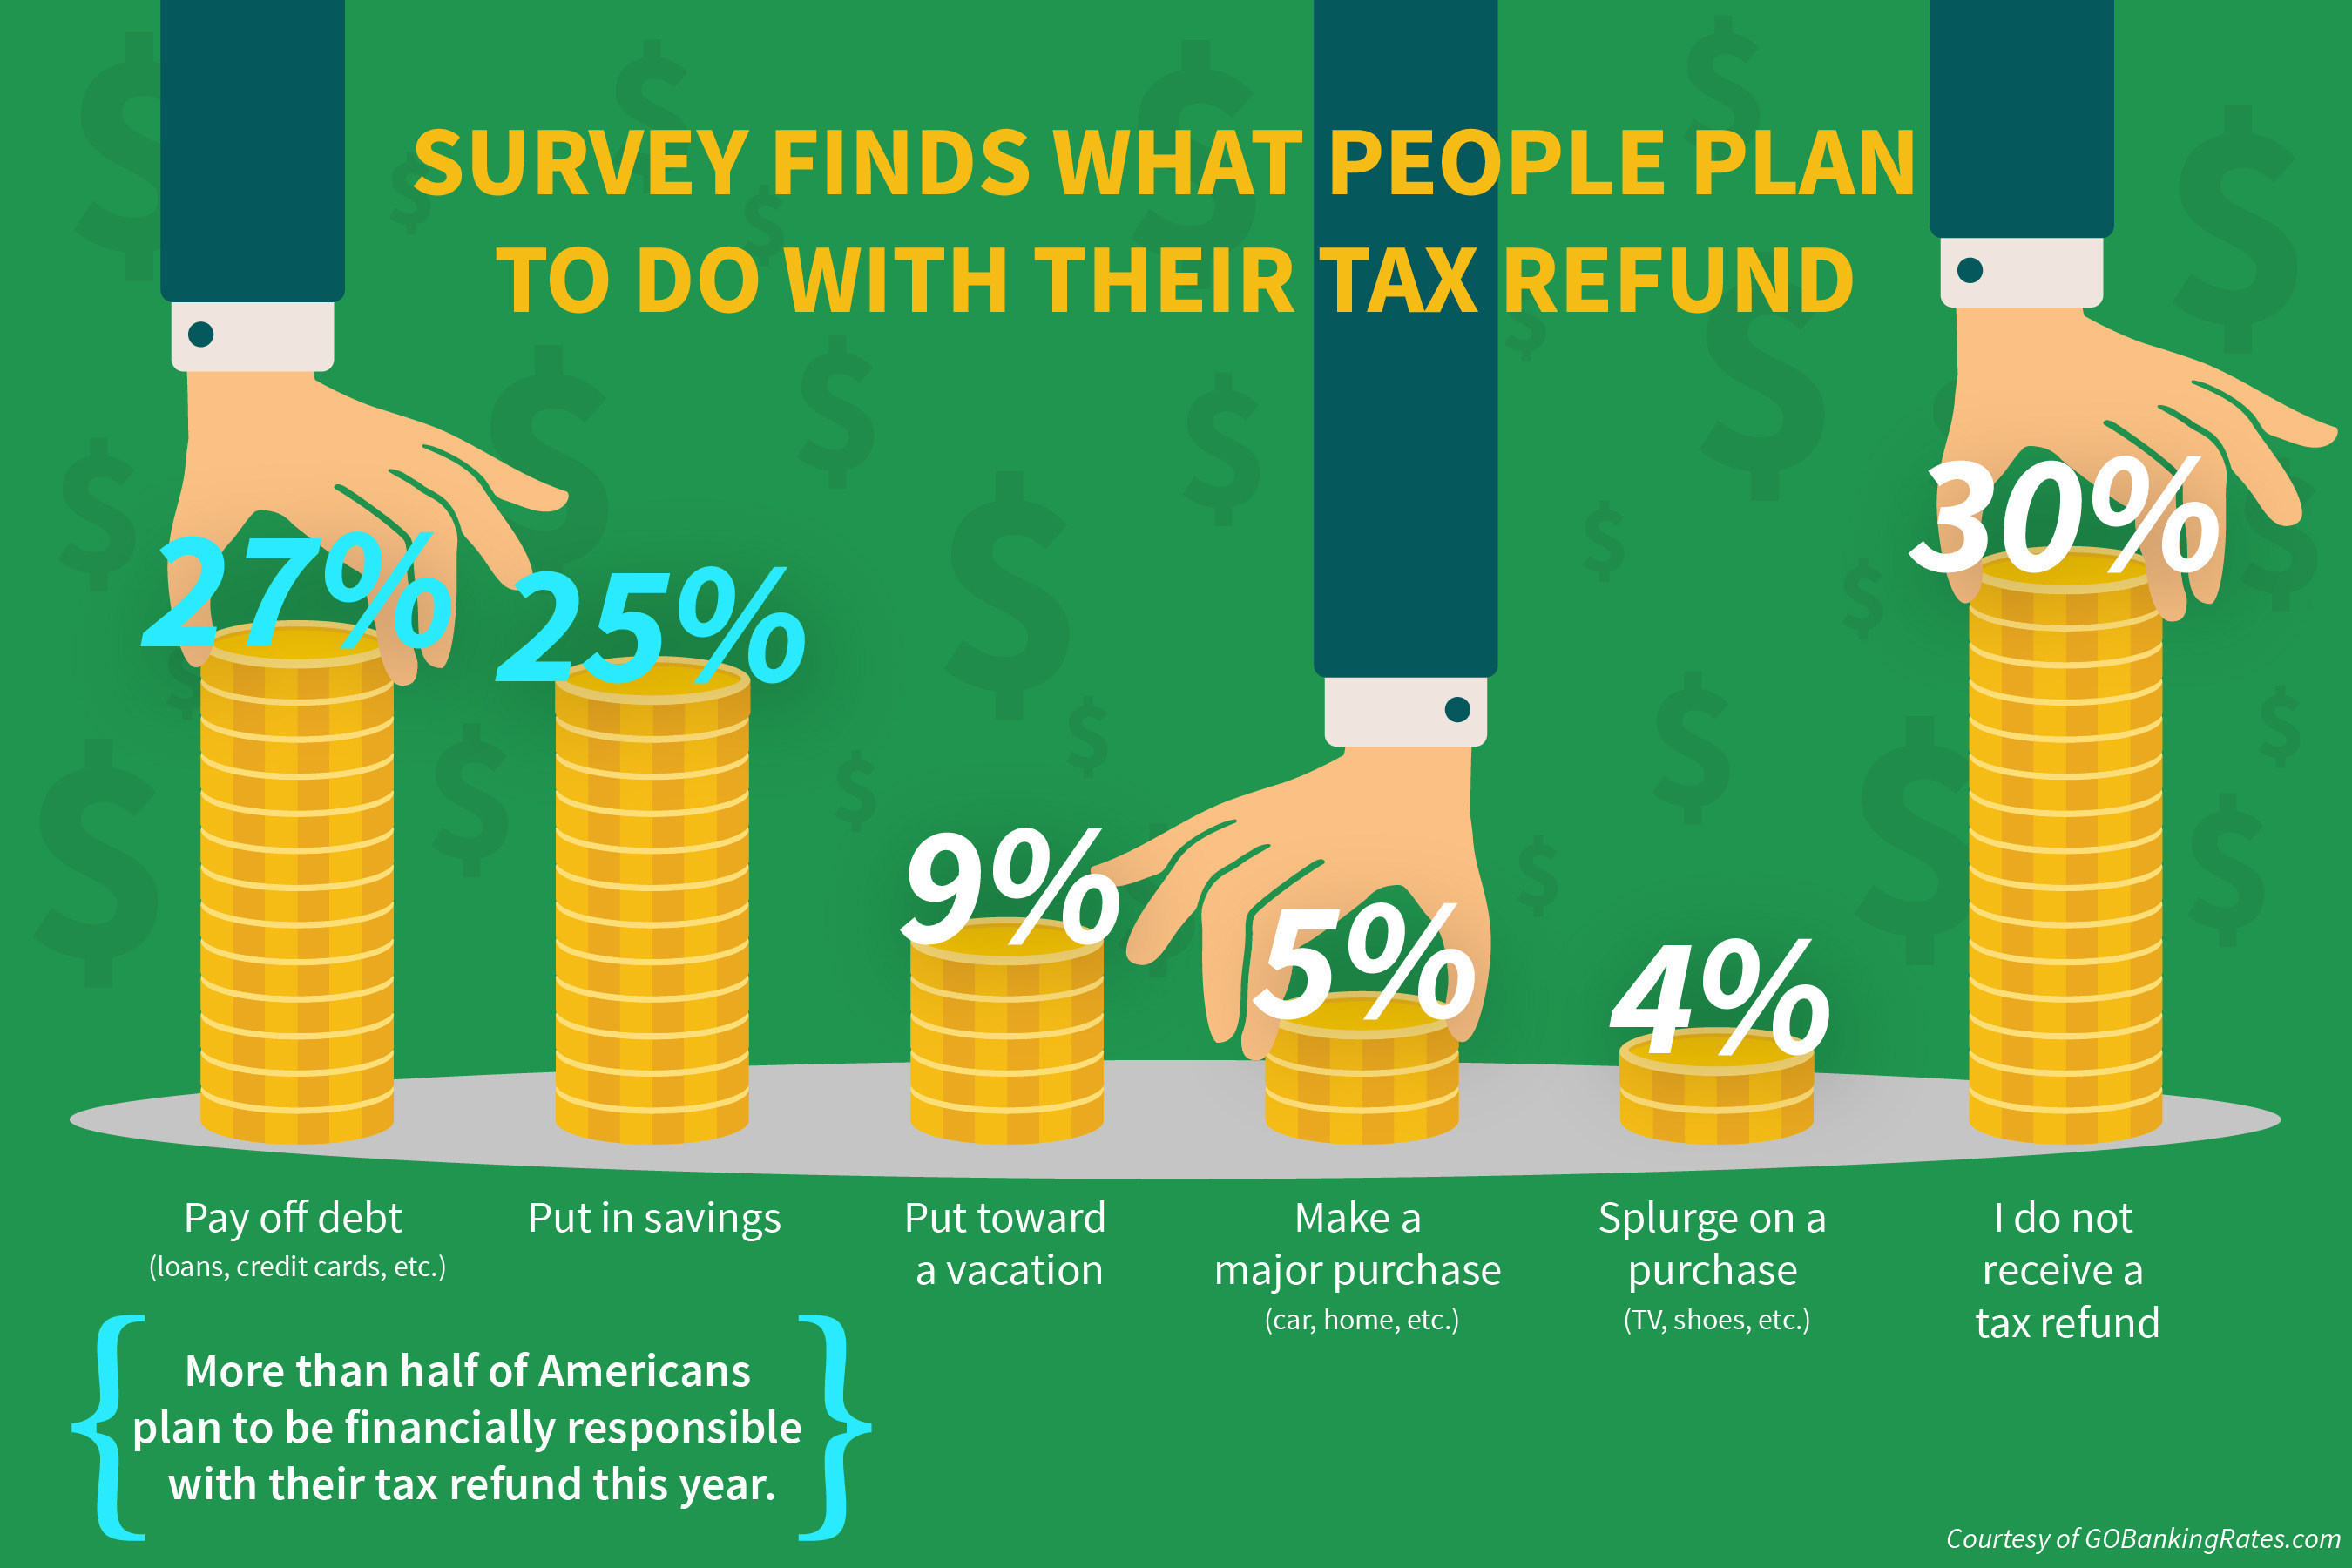 GOBankingRates survey finds what people plan to do with their tax refund.